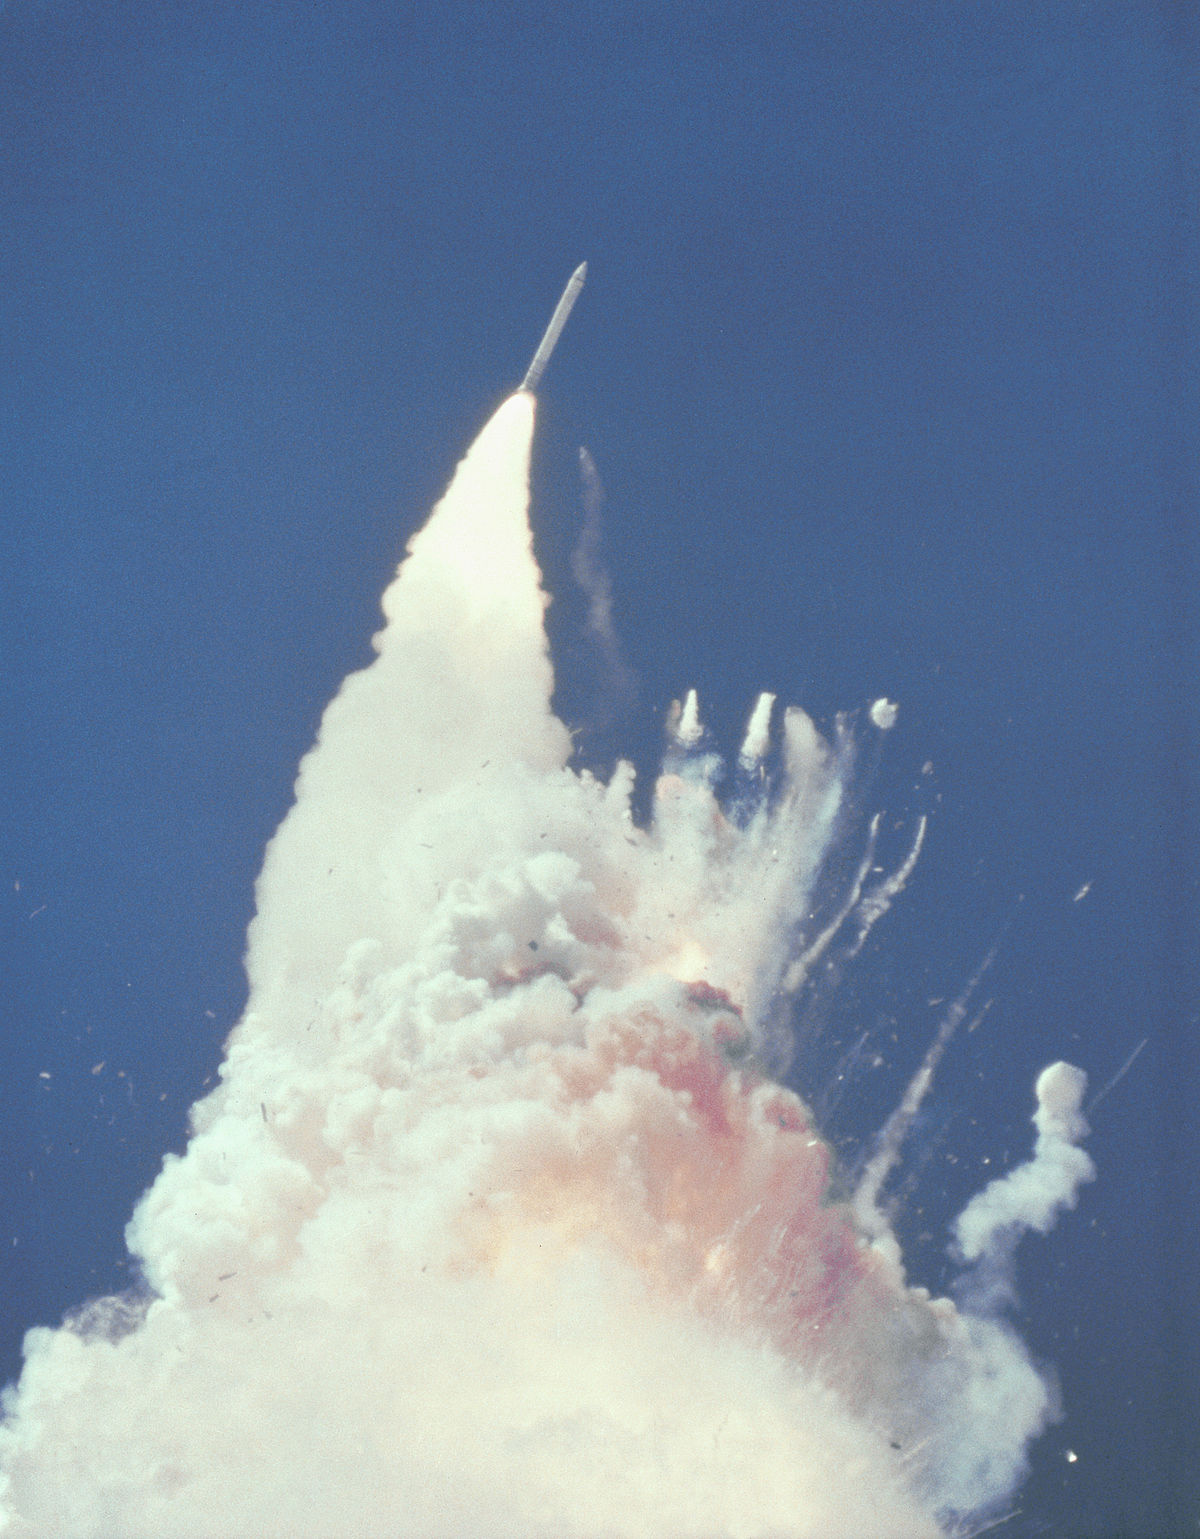 space shuttle challenger root cause - photo #34